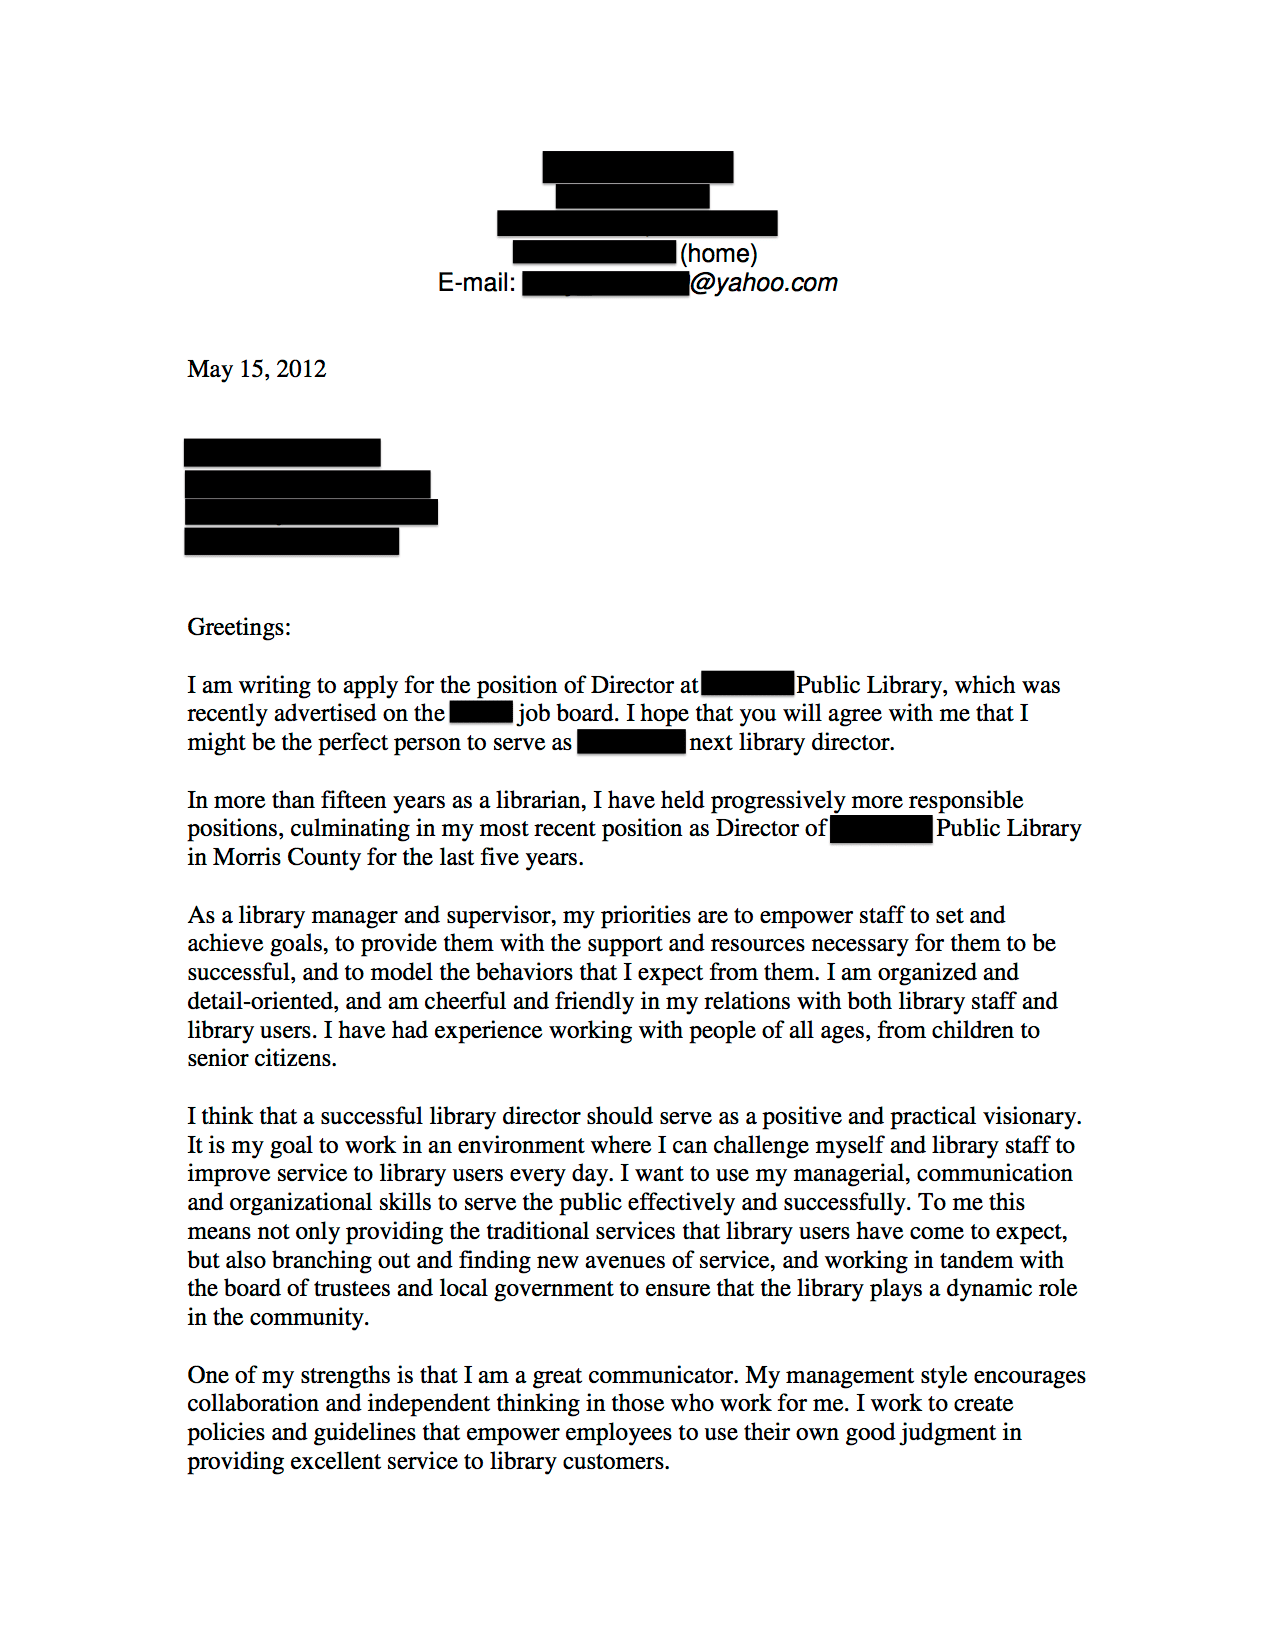 Public Library Director Cover Letter